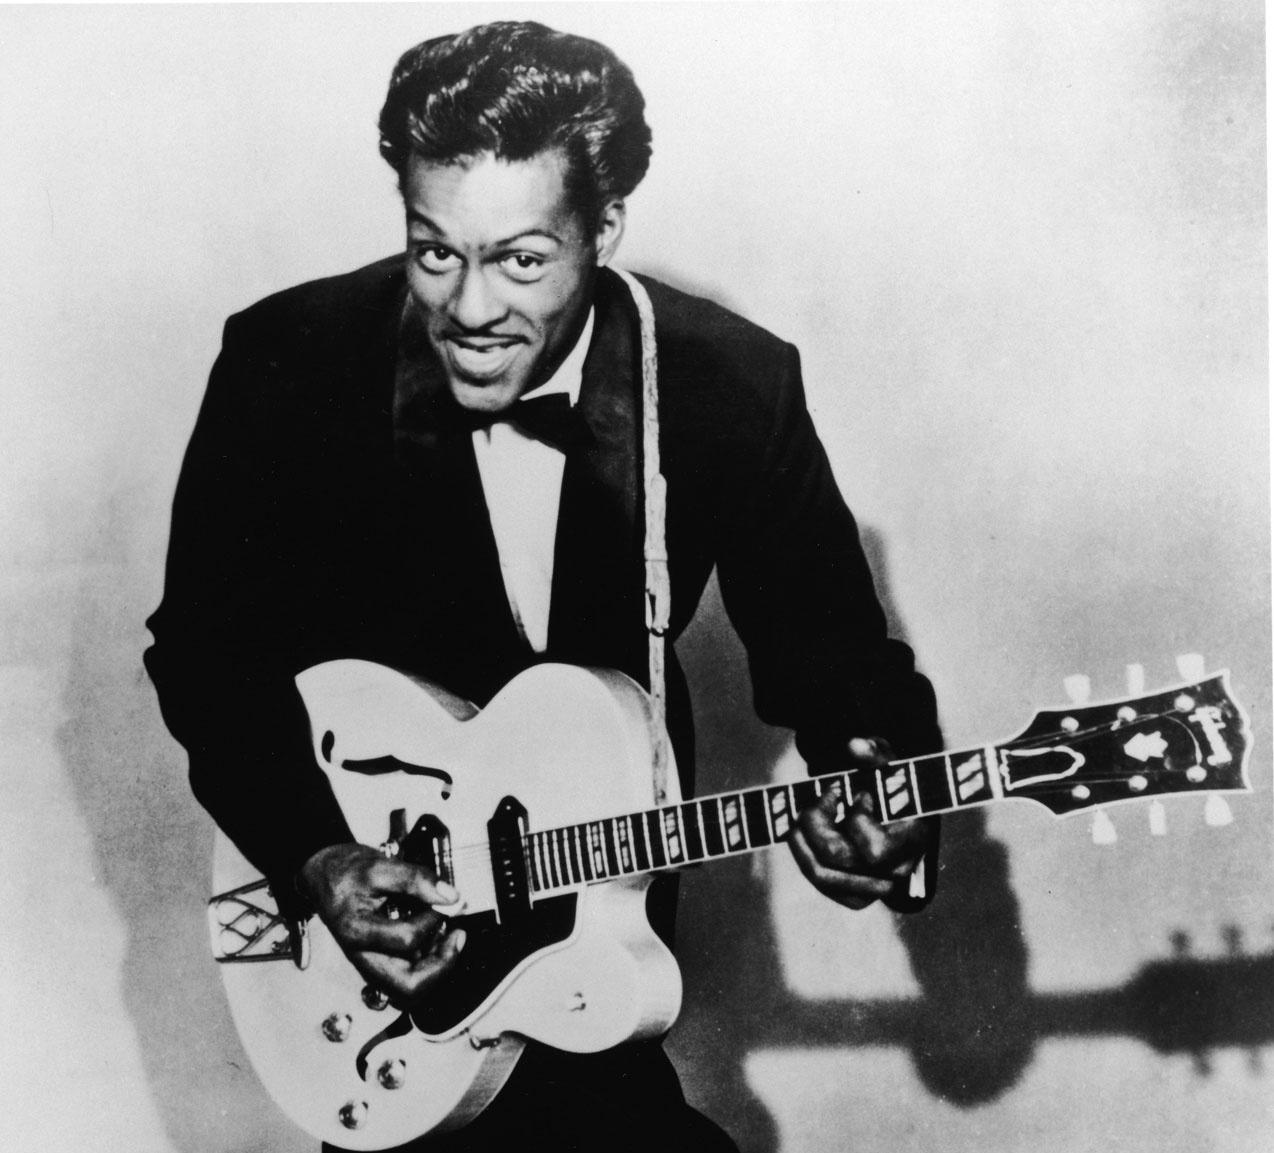 Chuck Berry's family will release new music 'in the coming days'